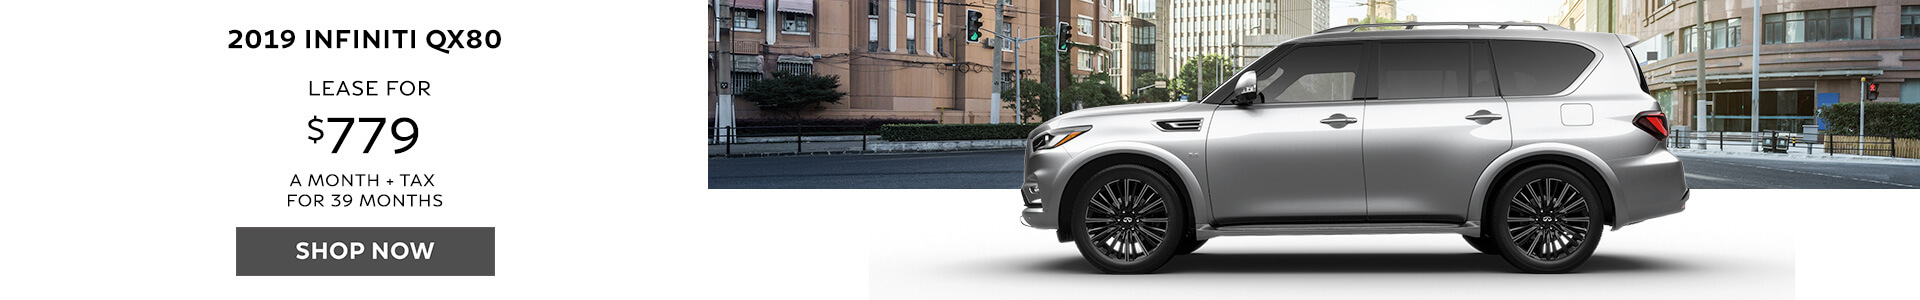 QX80 - Lease for $779